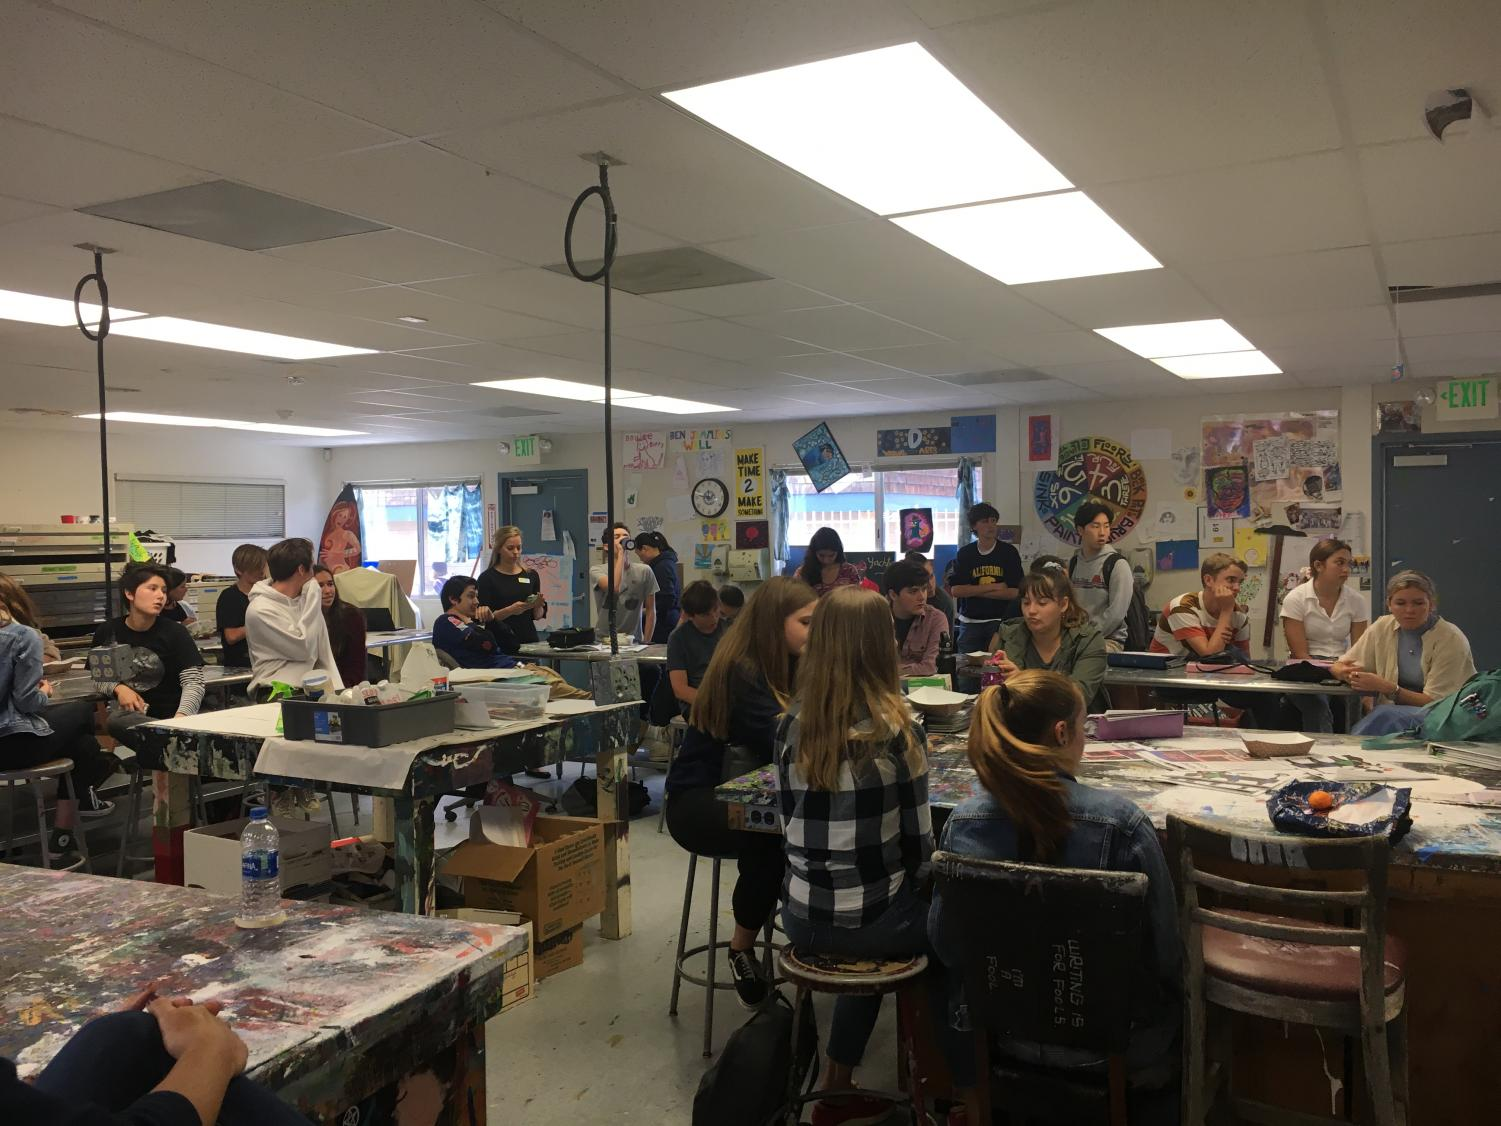 Today's student forum in P2 was centered around CAASPP testing and other topics.